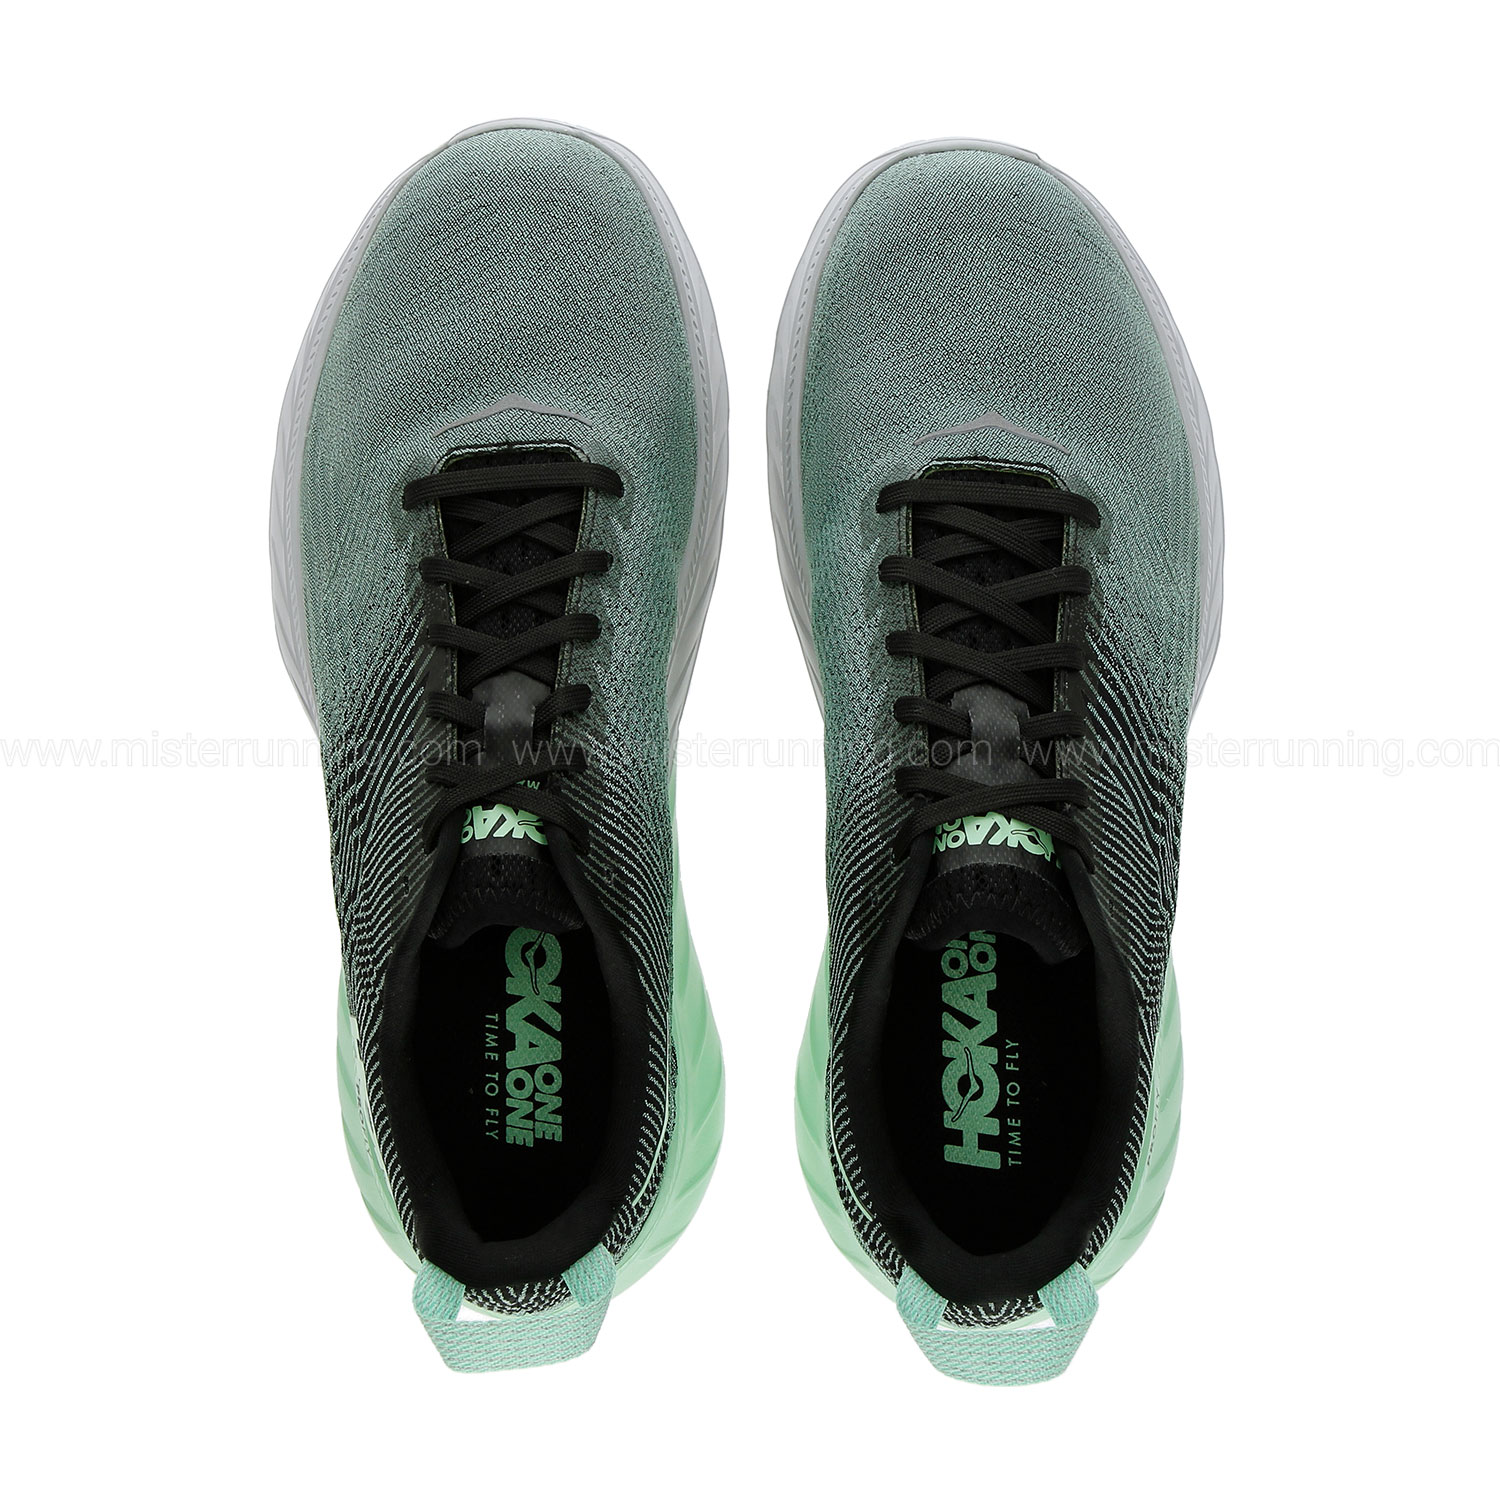 Hoka One One Mach 3 - Green Ash/Black